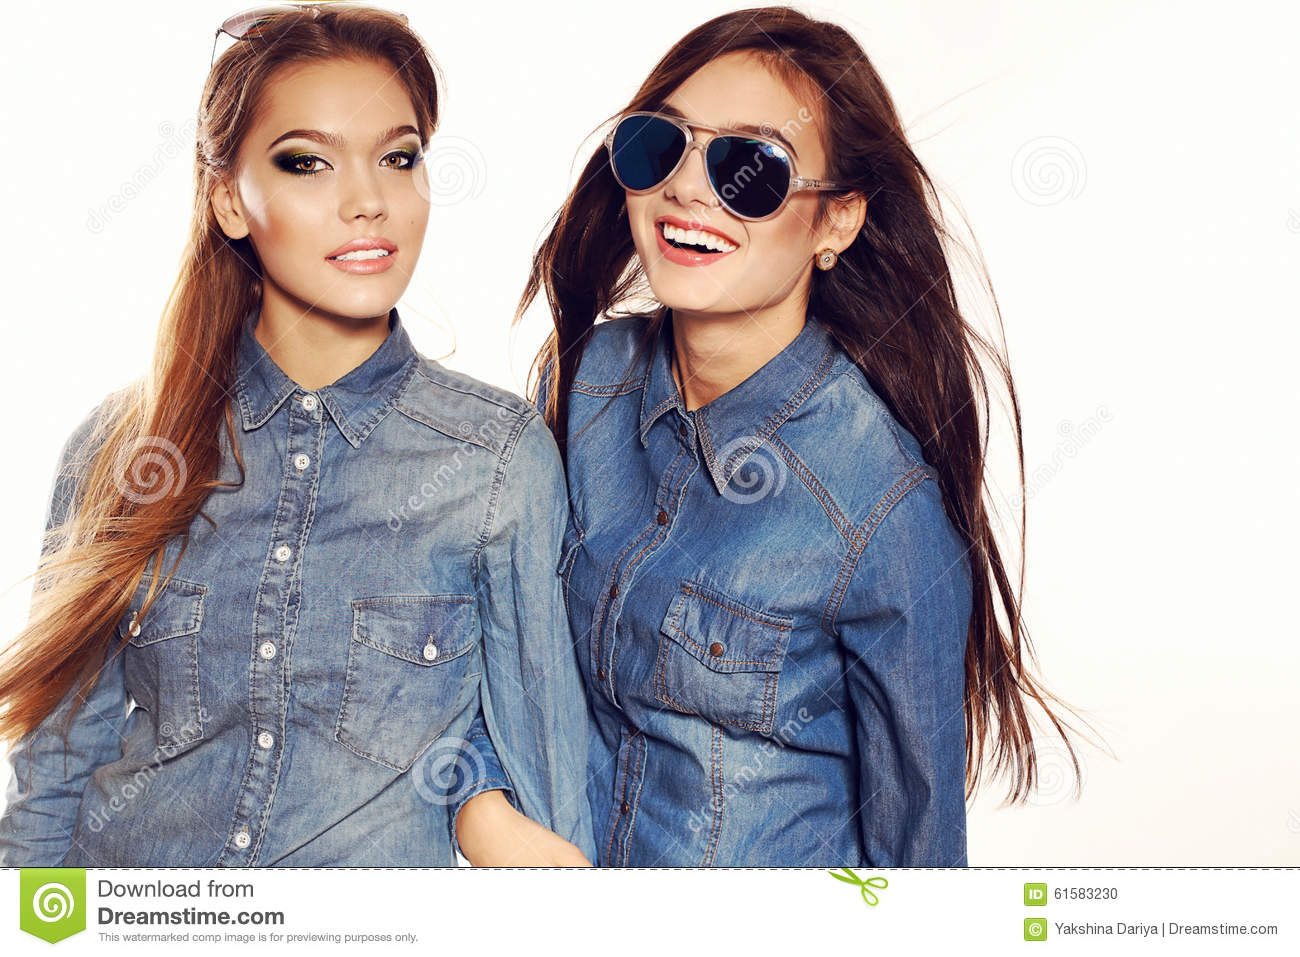 Hair Style Jeans: Women With Long Hair And Bright Makeup Wears Jeans Clothes